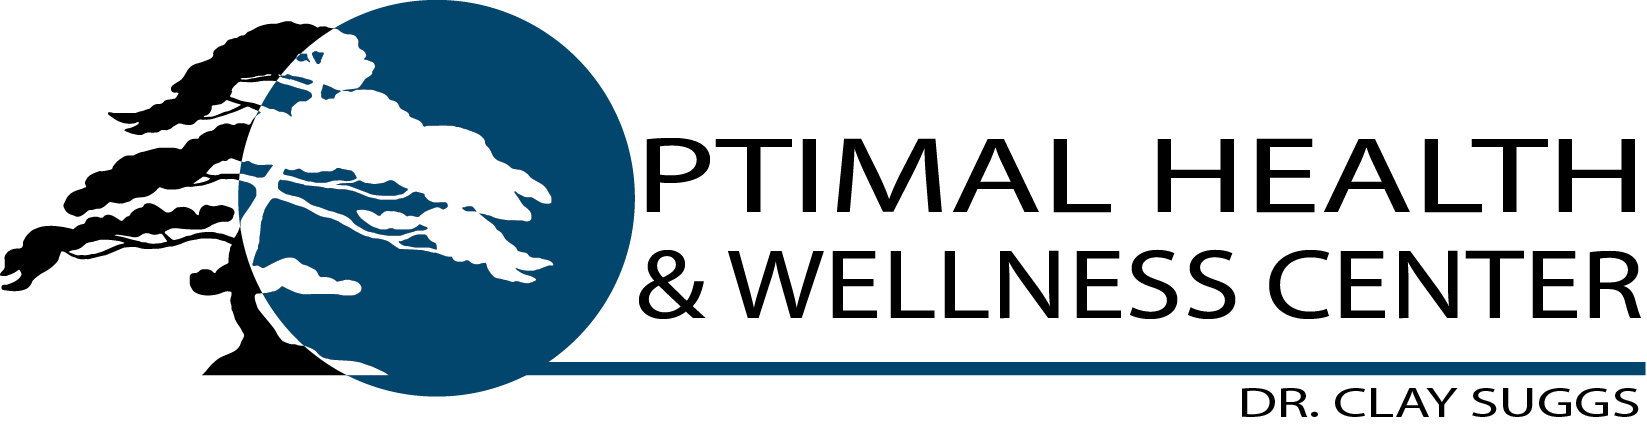 Optimal Health & Wellness Center